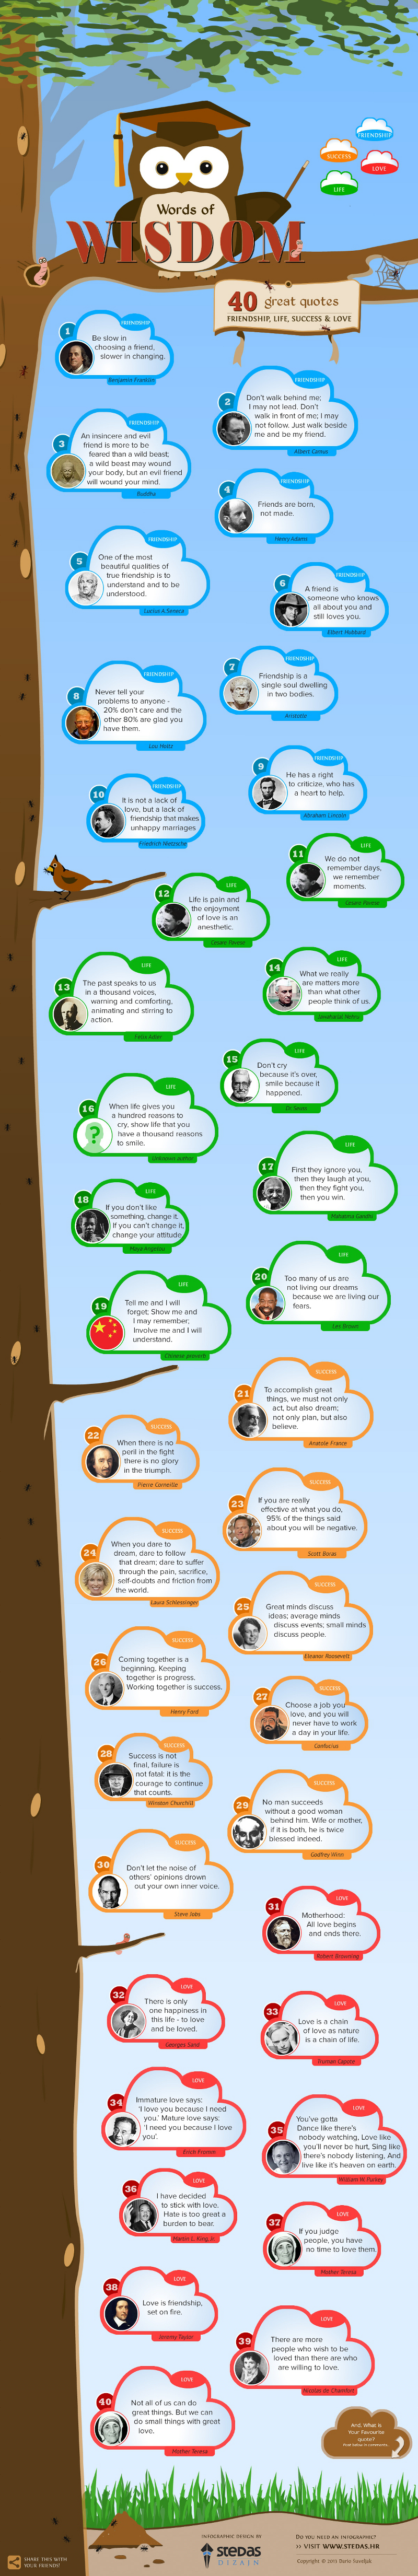 40 Famous Business Success Quotes and Sayings